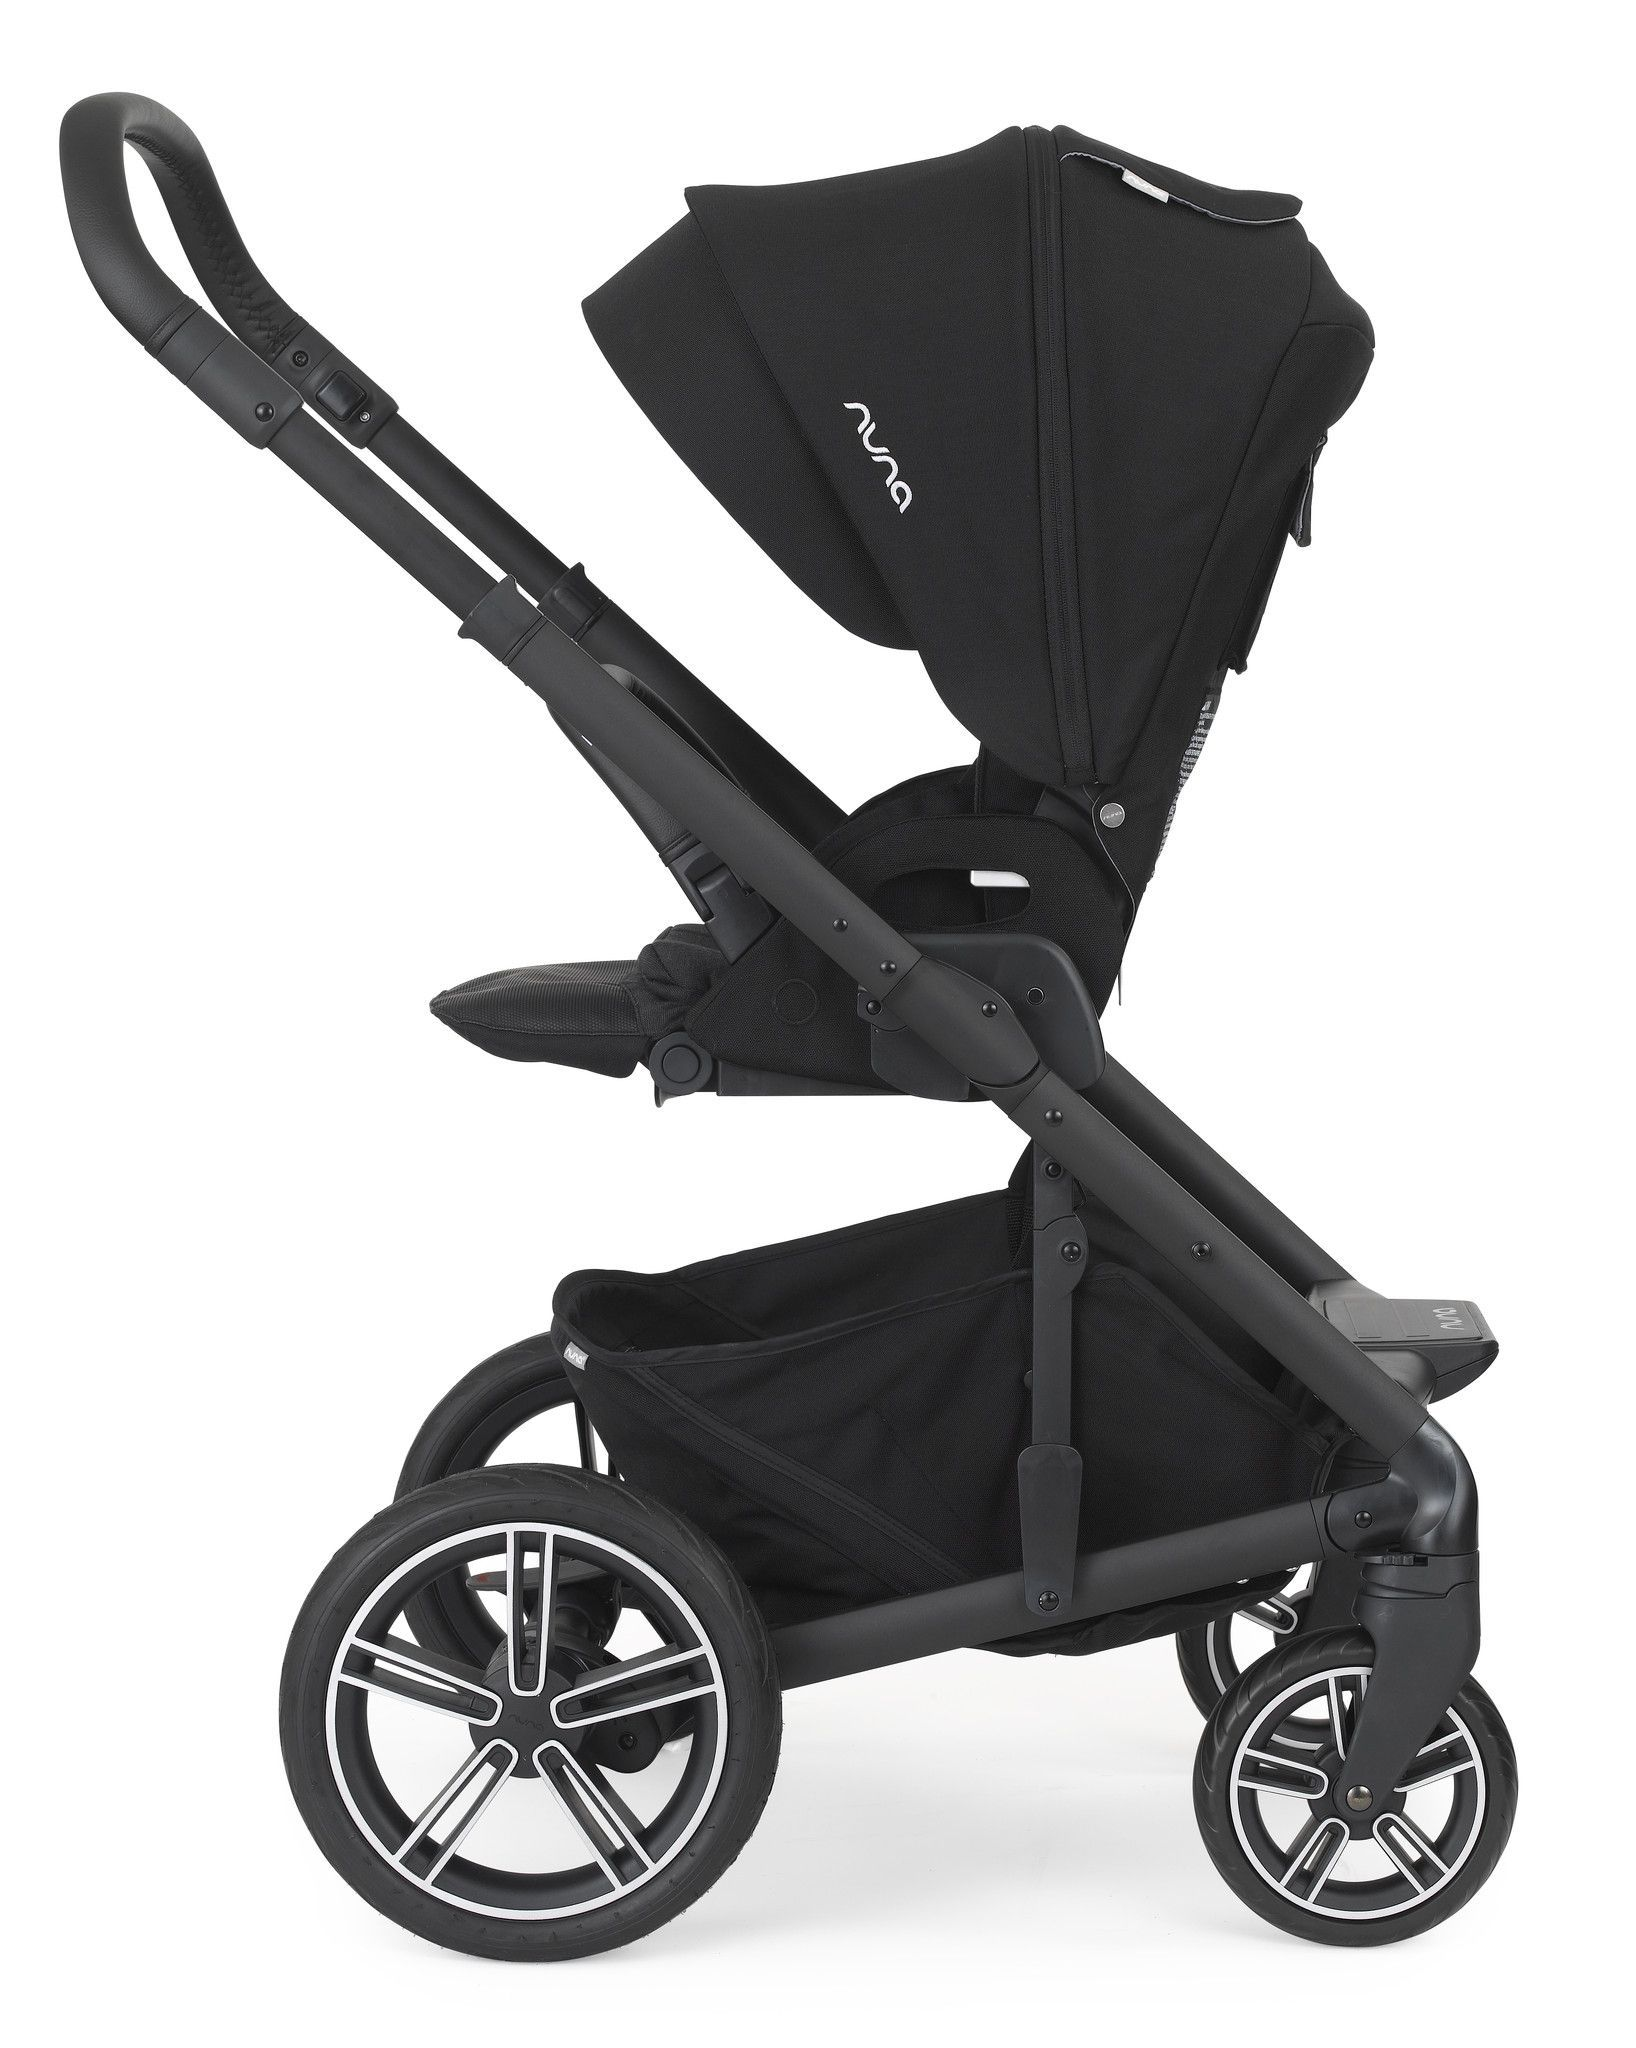 Nuna MIXX 2 infant car seat patible stroller